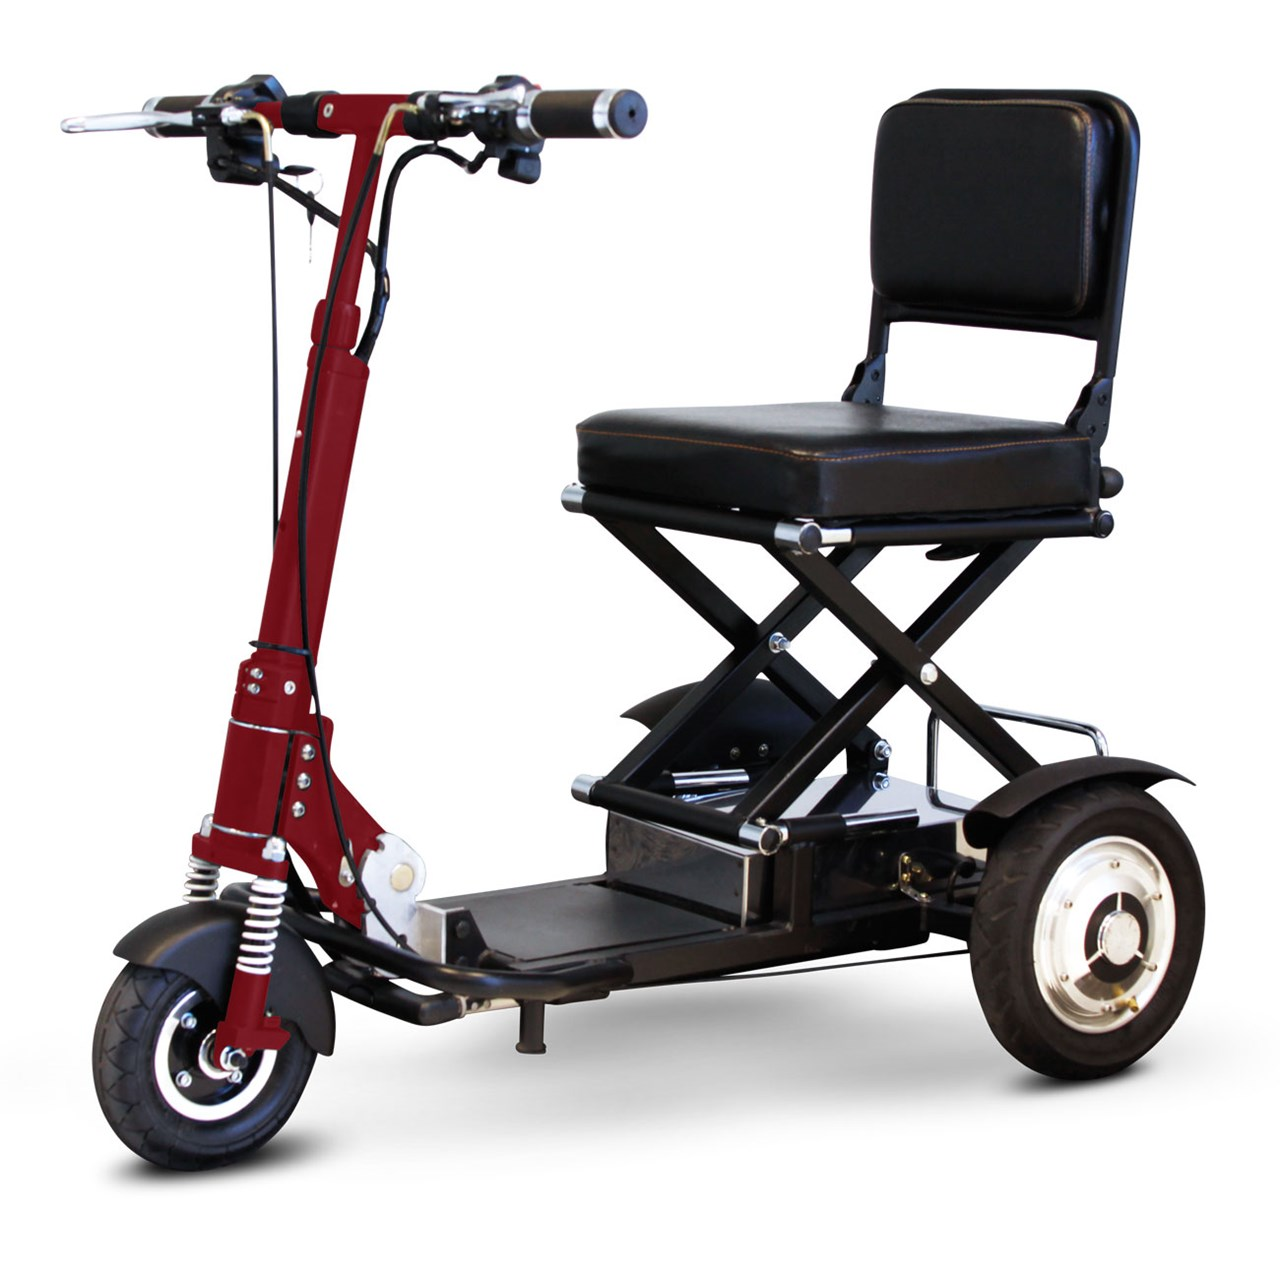 EWheels Speedy EW-01 Folding Travel Scooter - Airline-Approved Battery